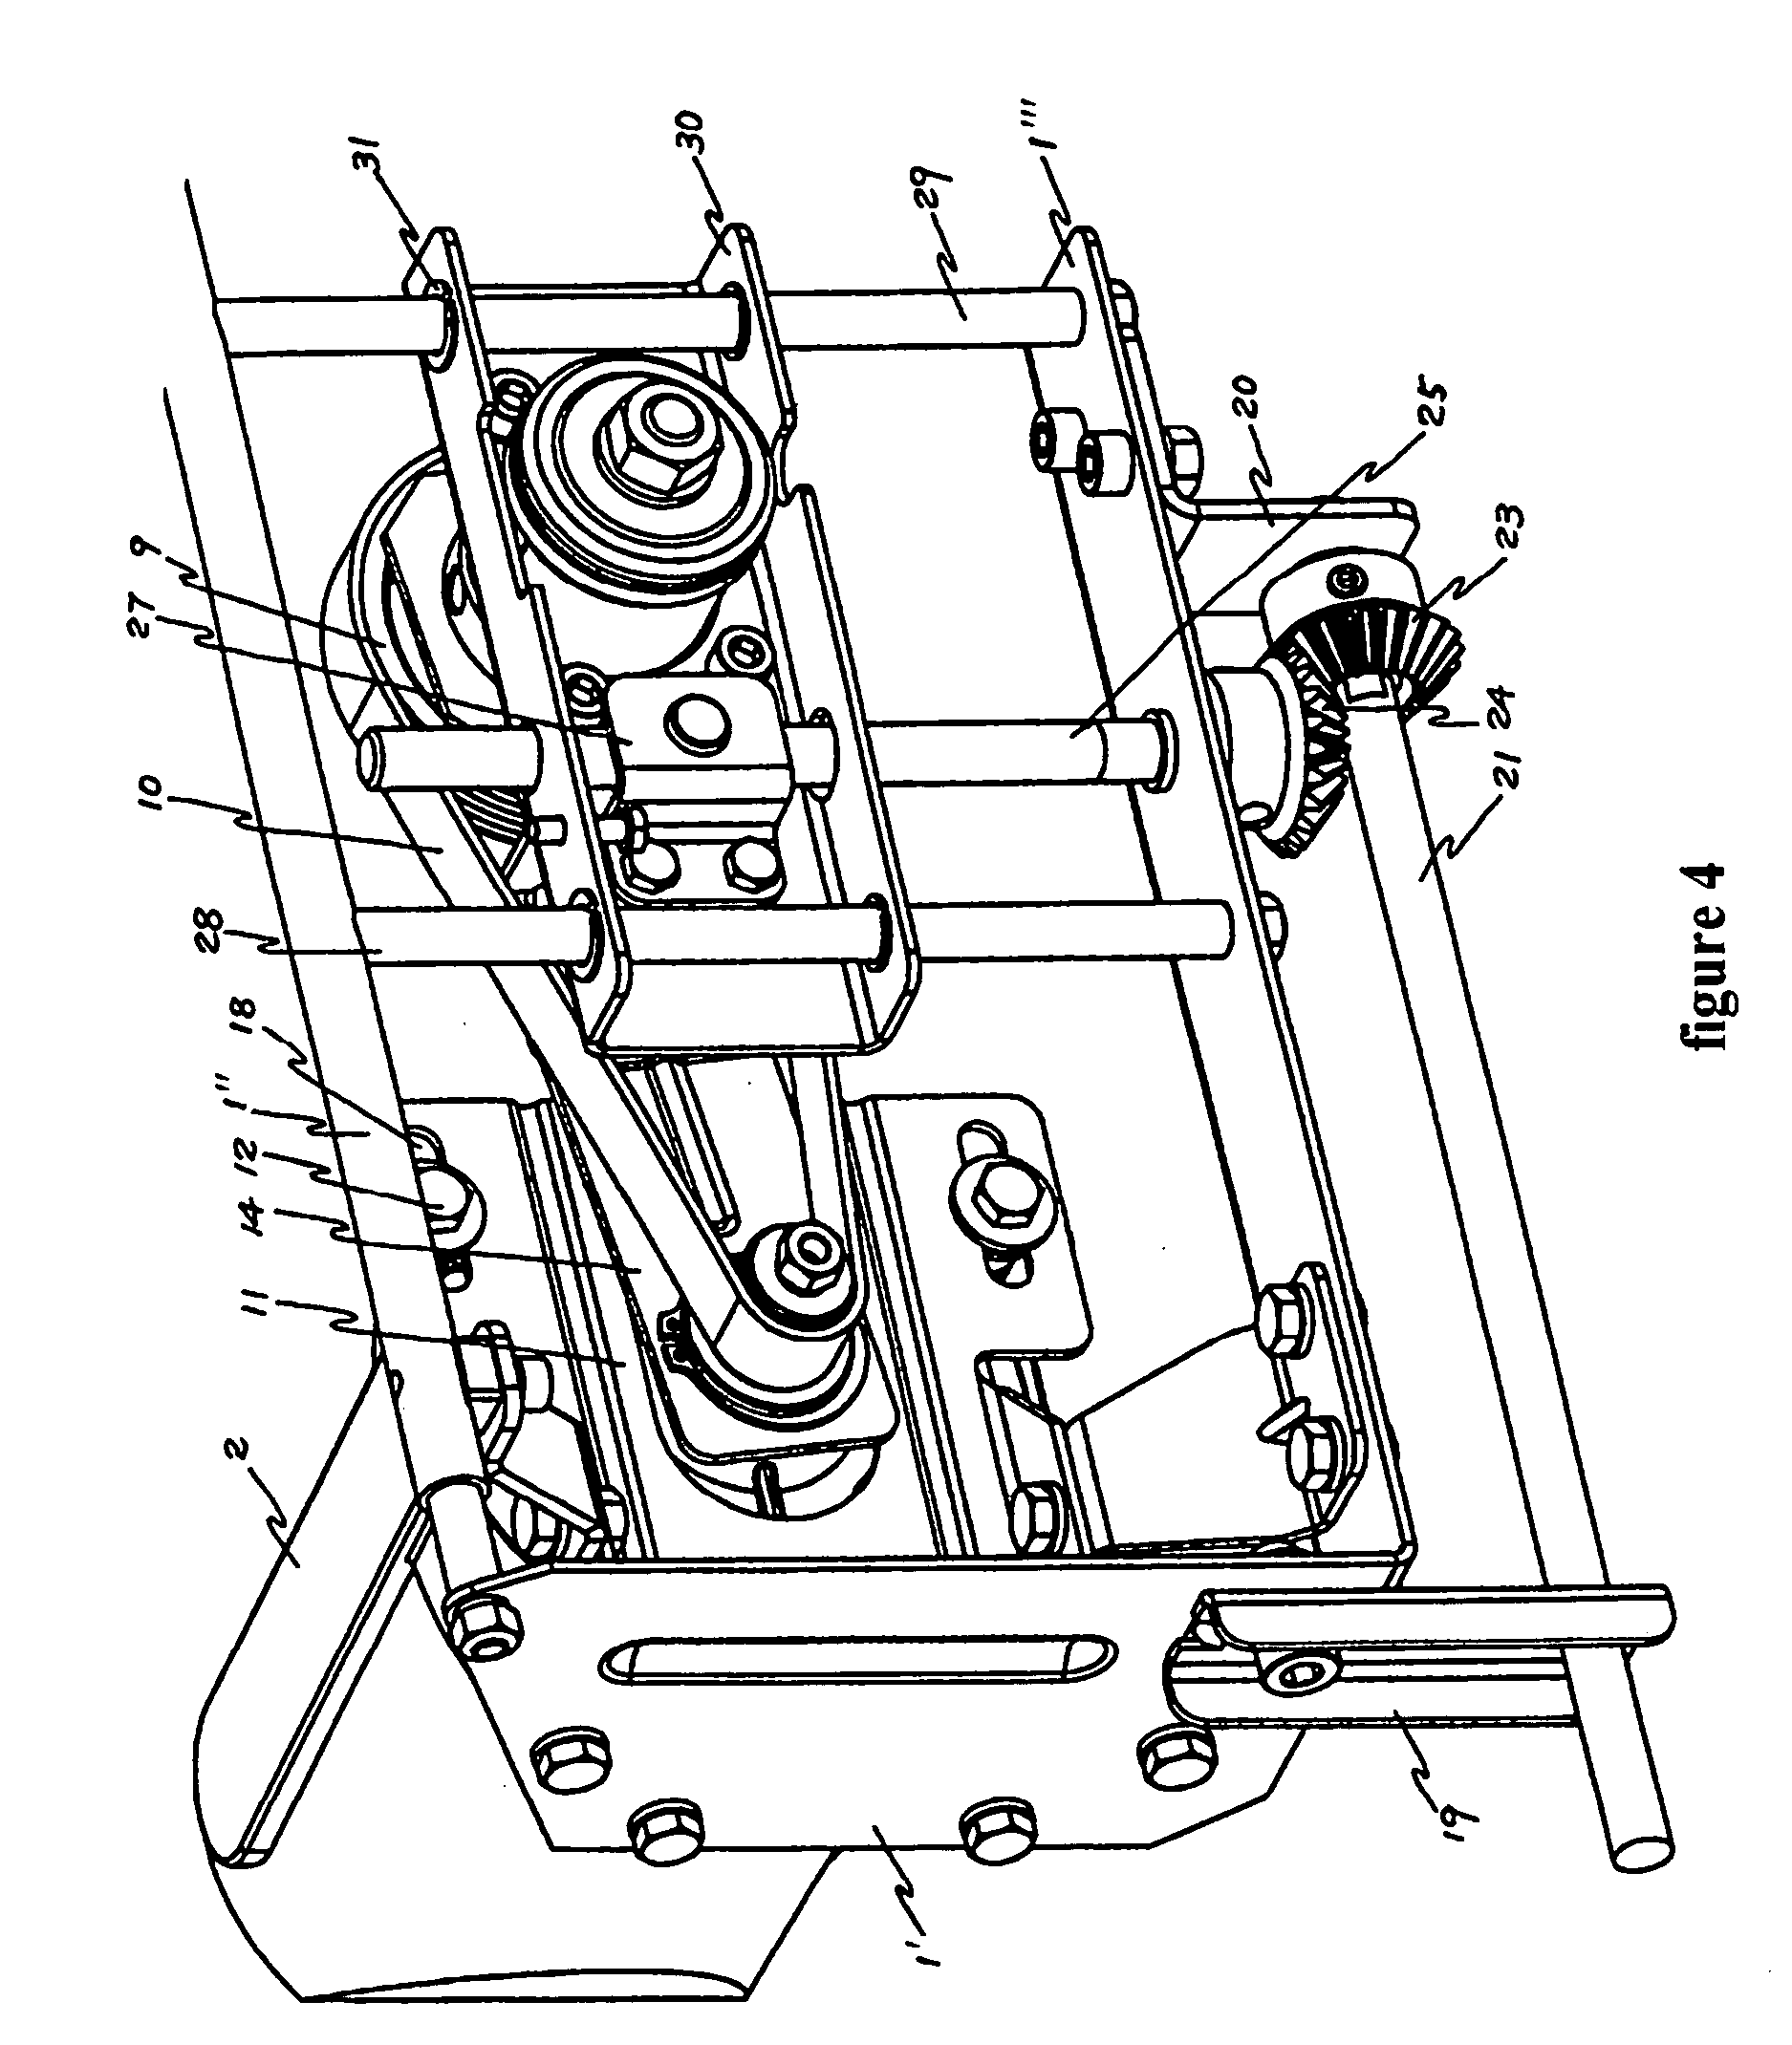 Patent US Blade driving mechanism for a table saw